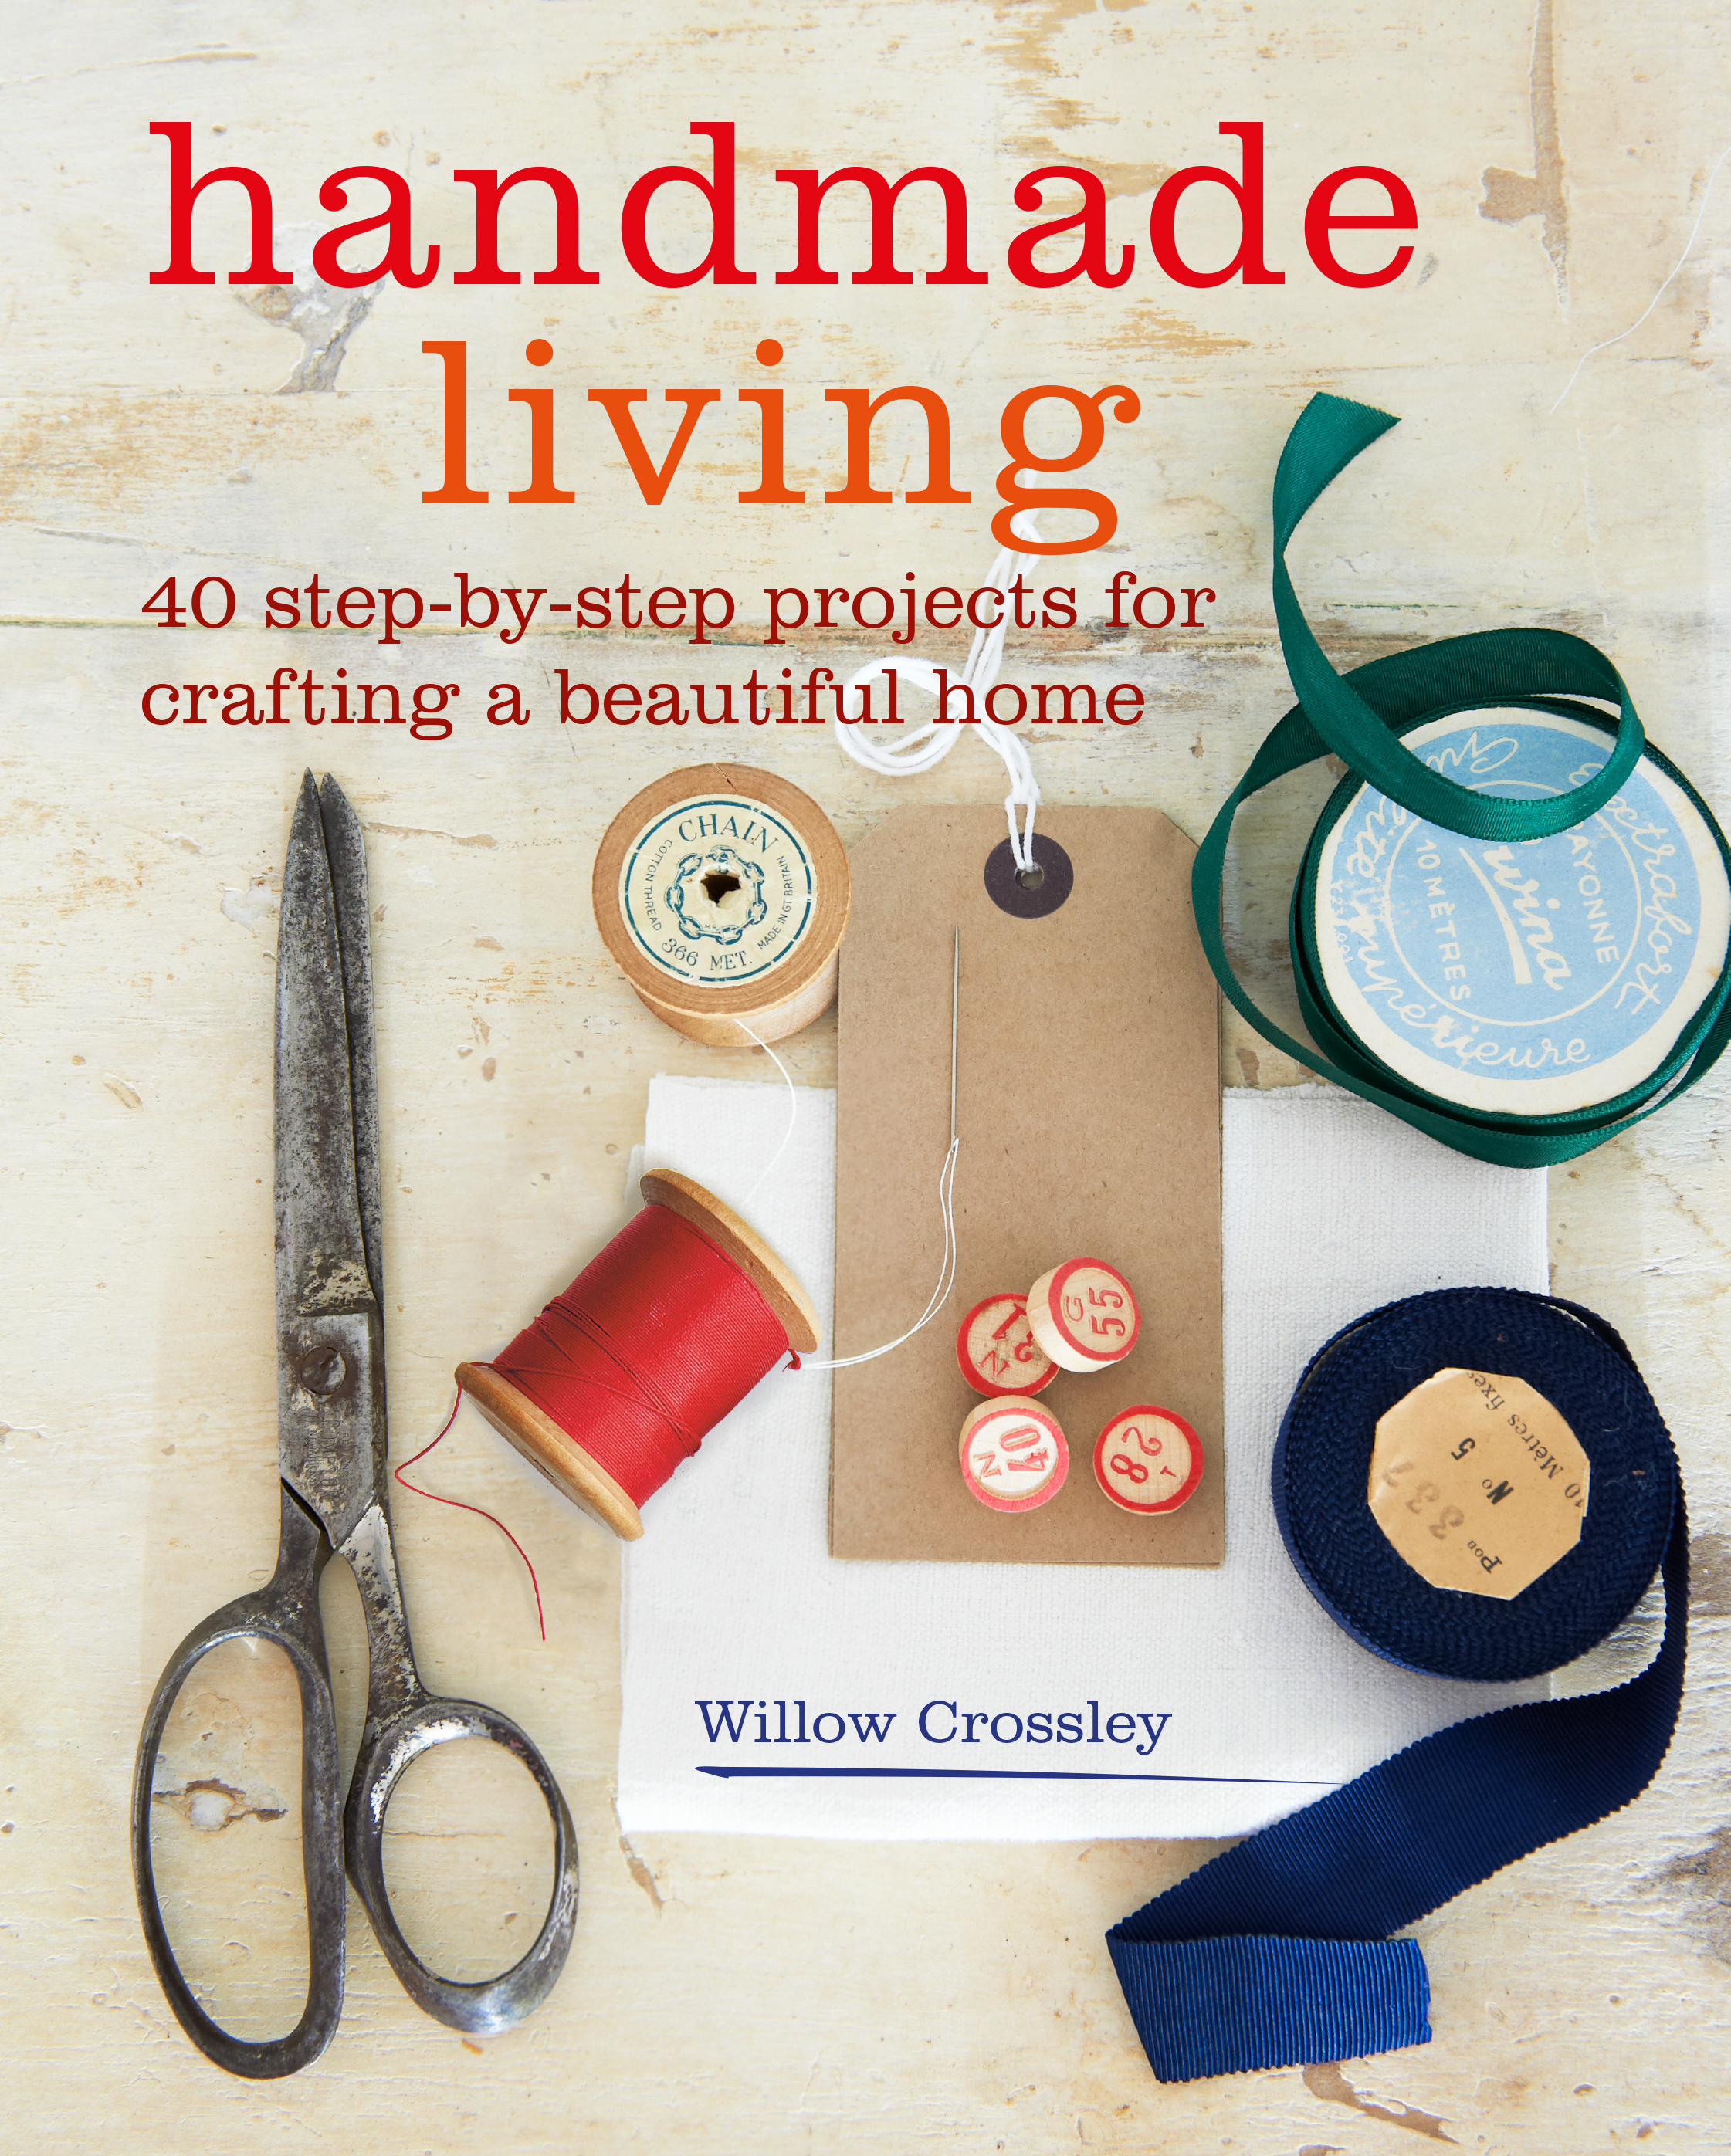 Handmade Living by Willow Crossley CICO Books